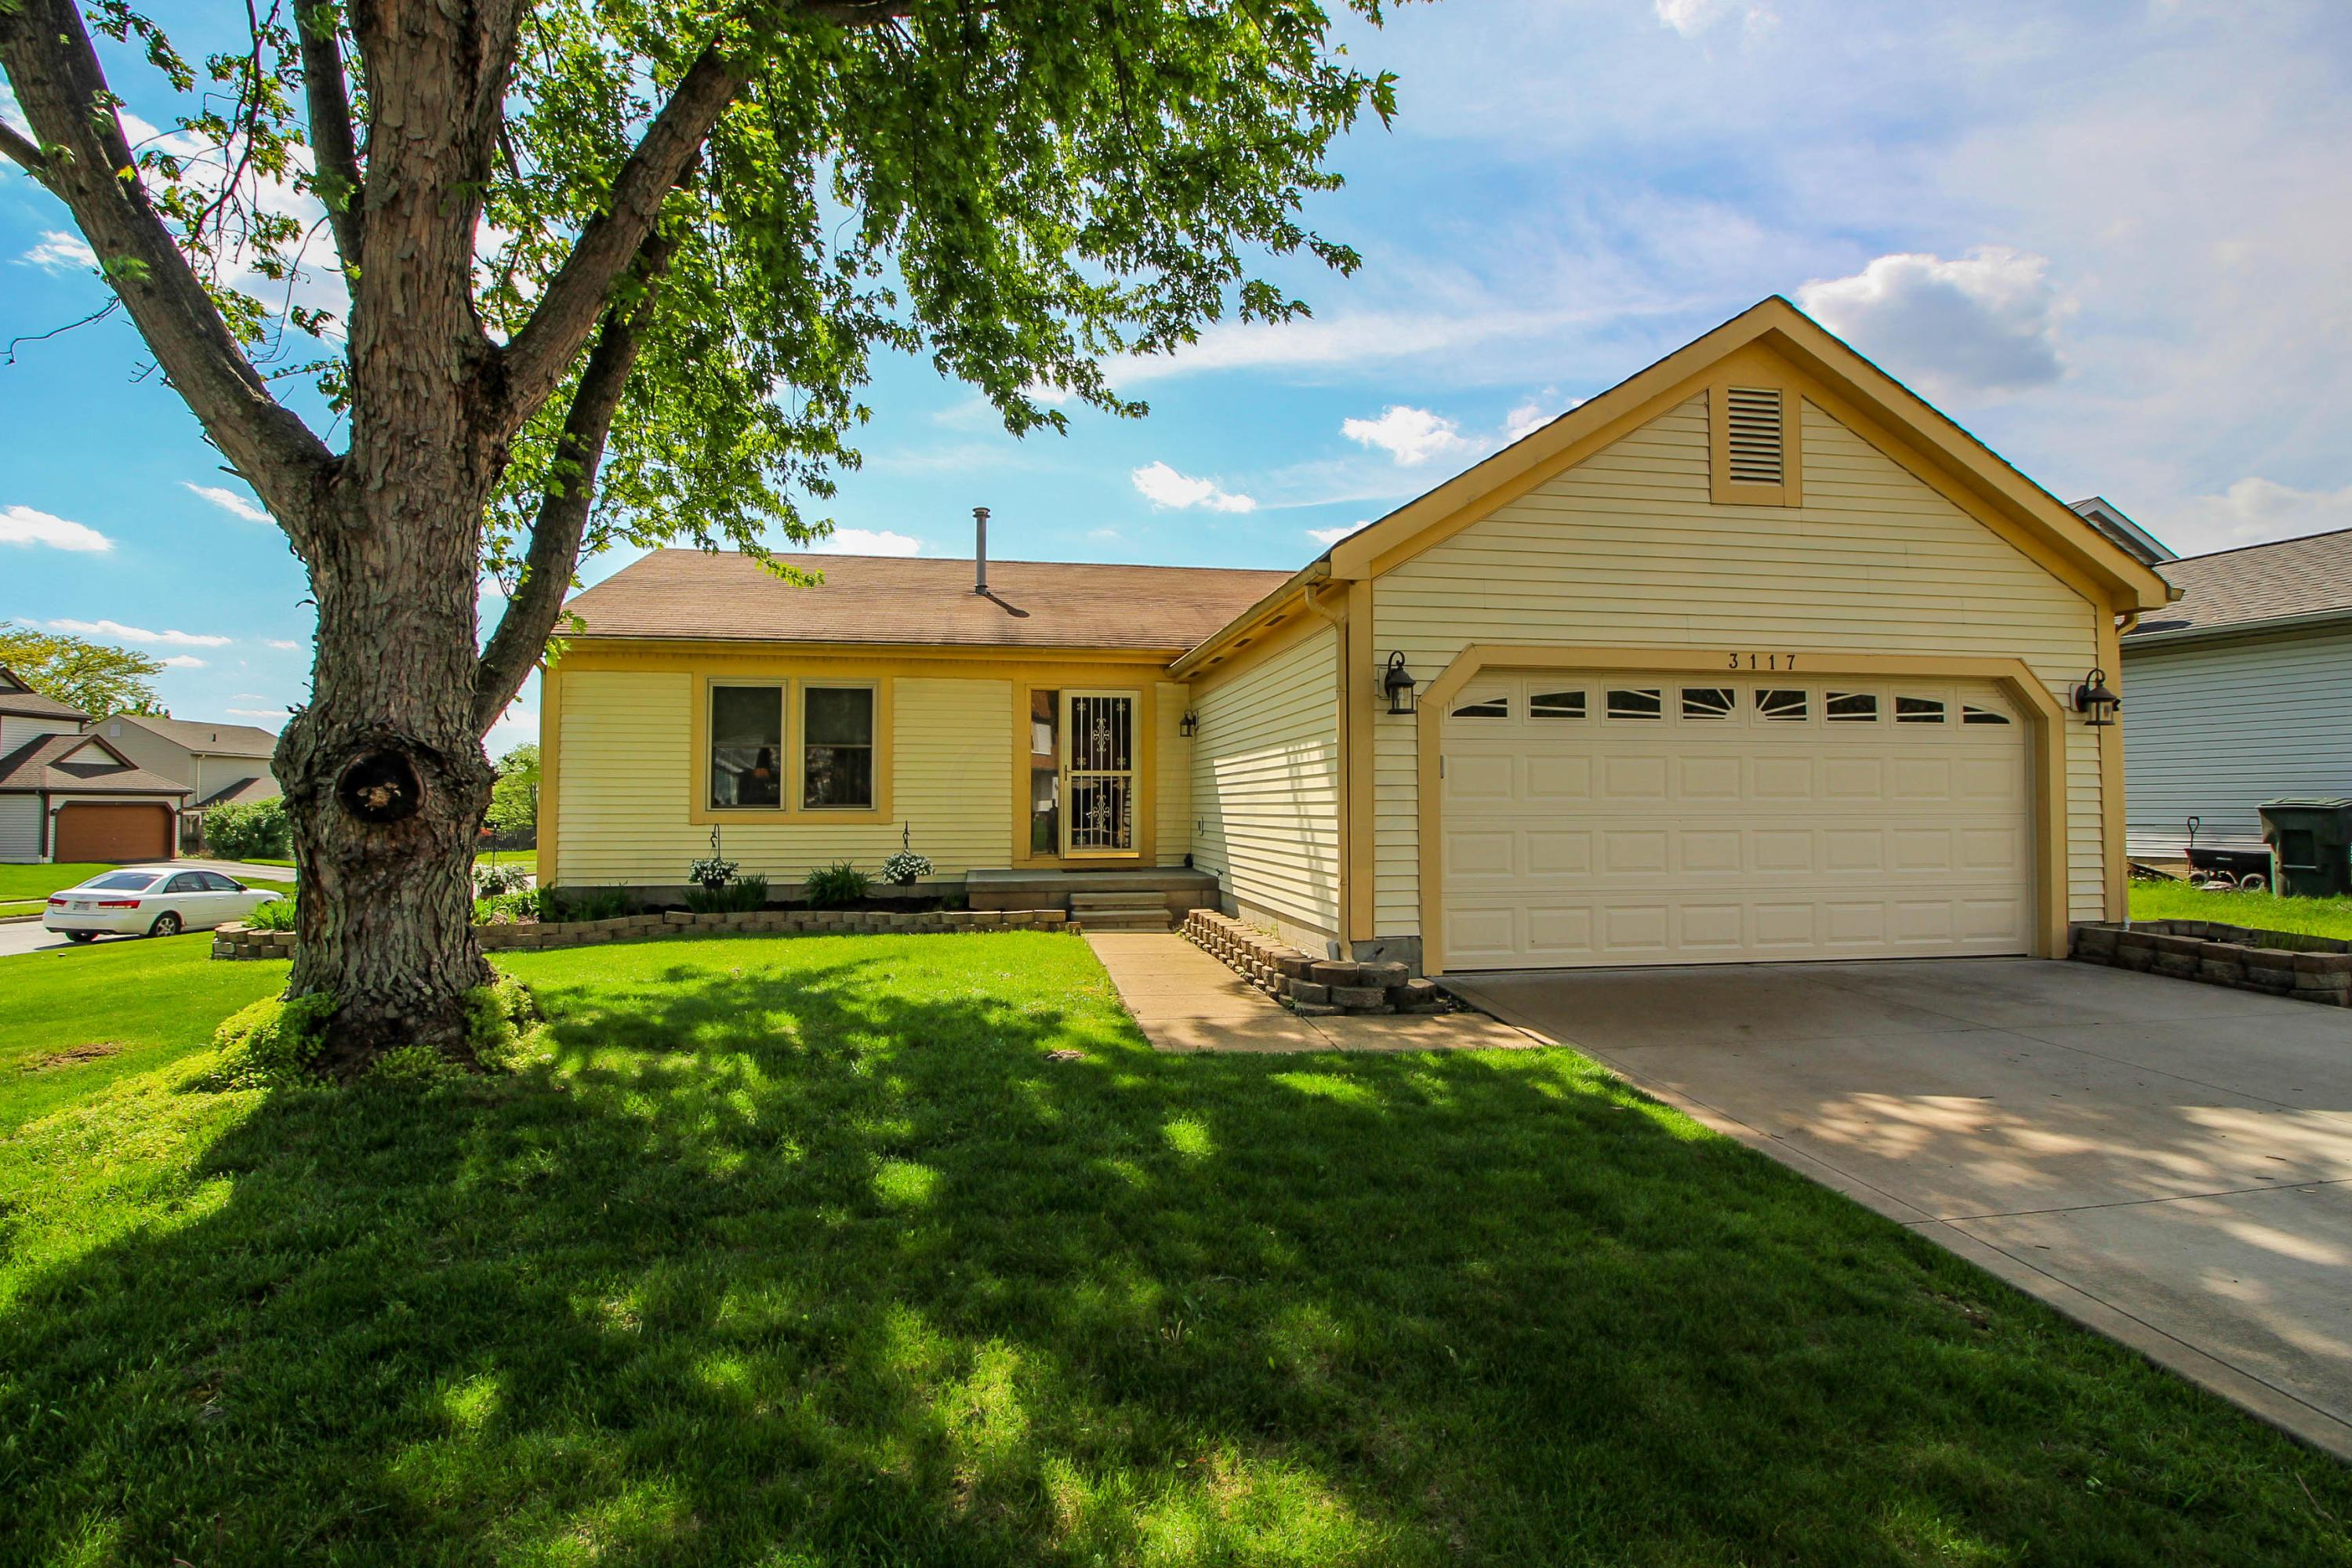 3117 Alderbrook Drive, Pickerington, OH 43147